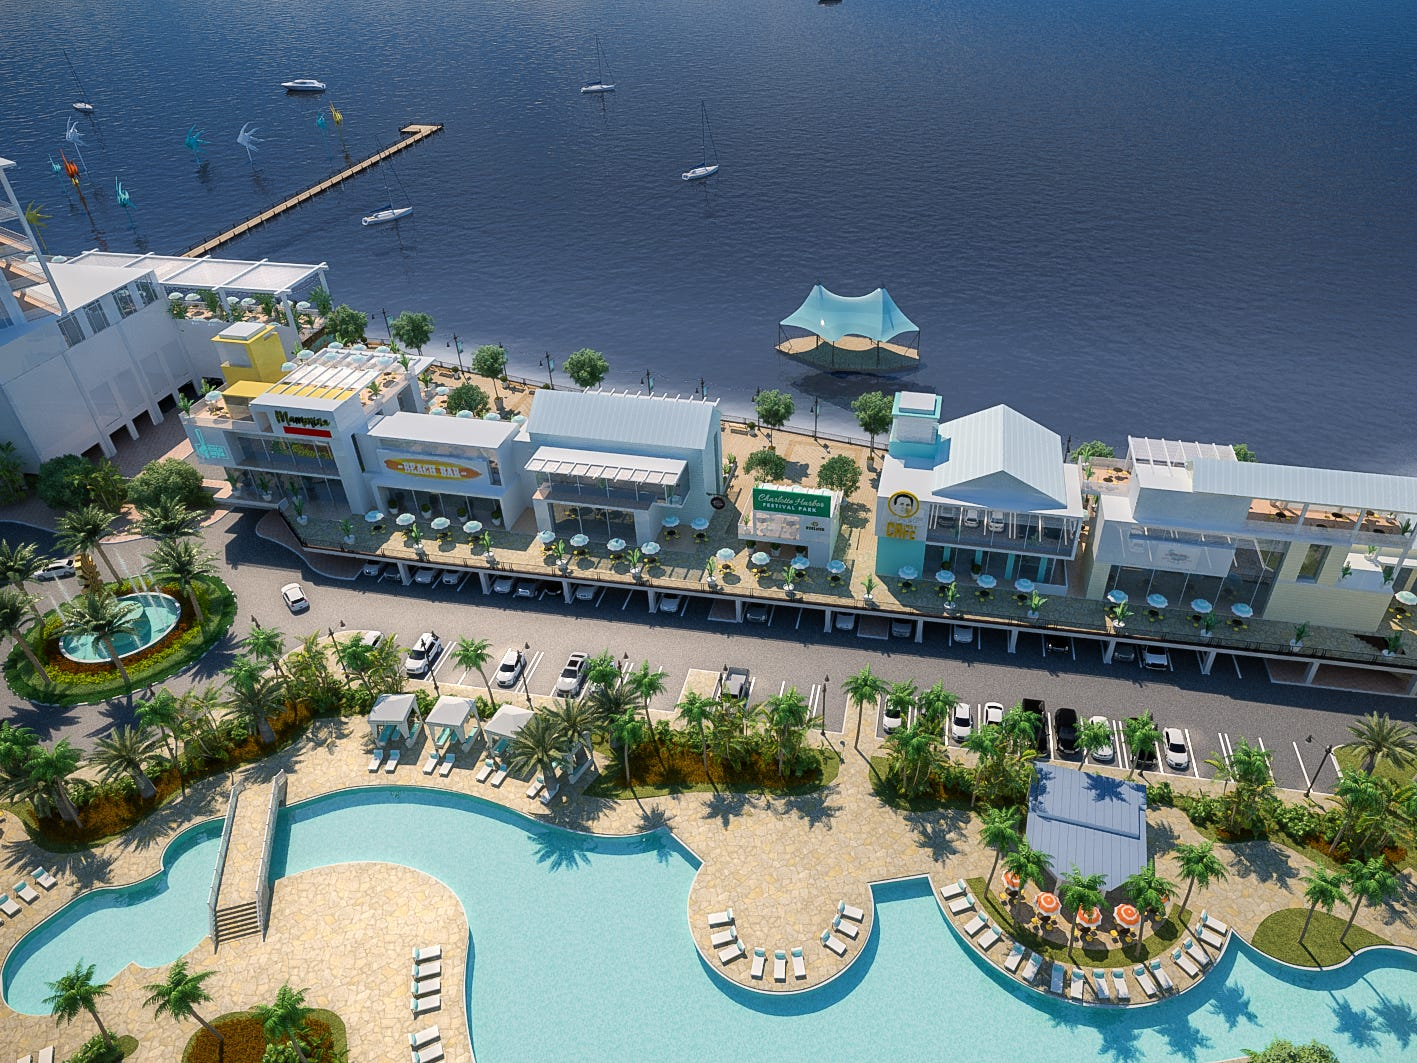 Allegiant plans to break ground in February 2019 on the Sunseeker Resort Charlotte Harbor in southwest Florida, its first foray outside the airline business.